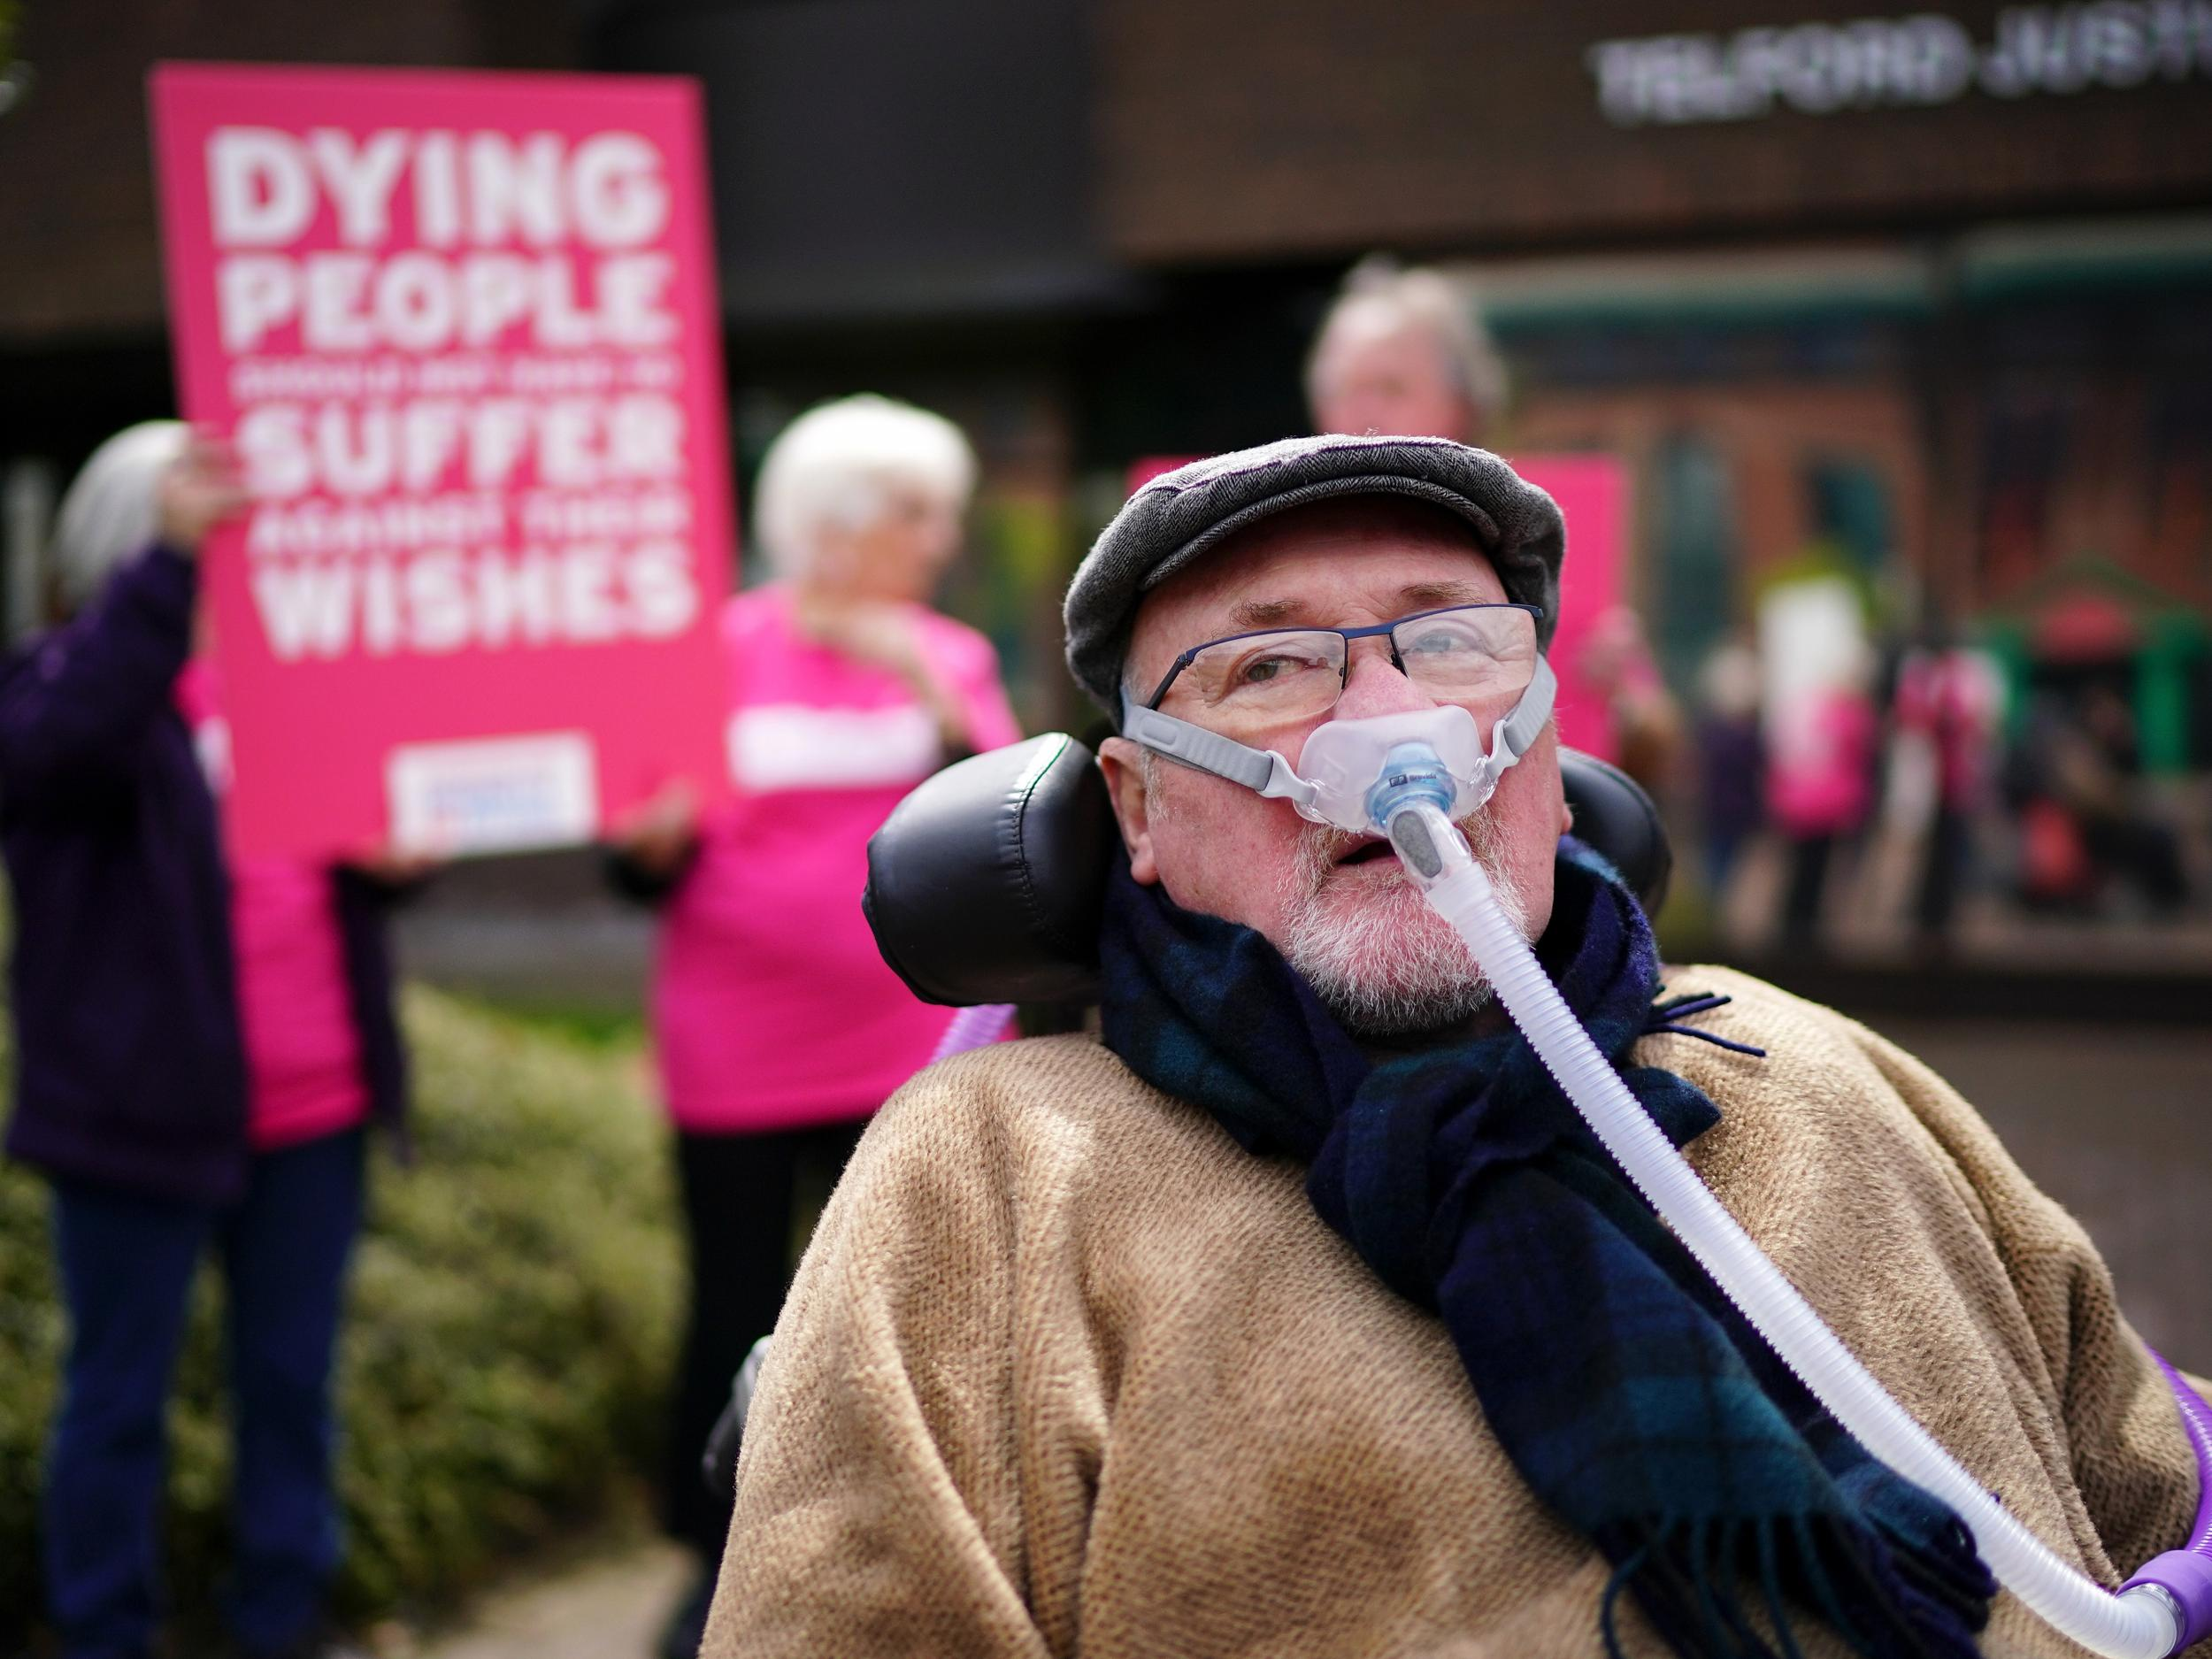 spectacle europa park noel 2018 Terminally ill man begins appeal against ban on assisted dying  spectacle europa park noel 2018